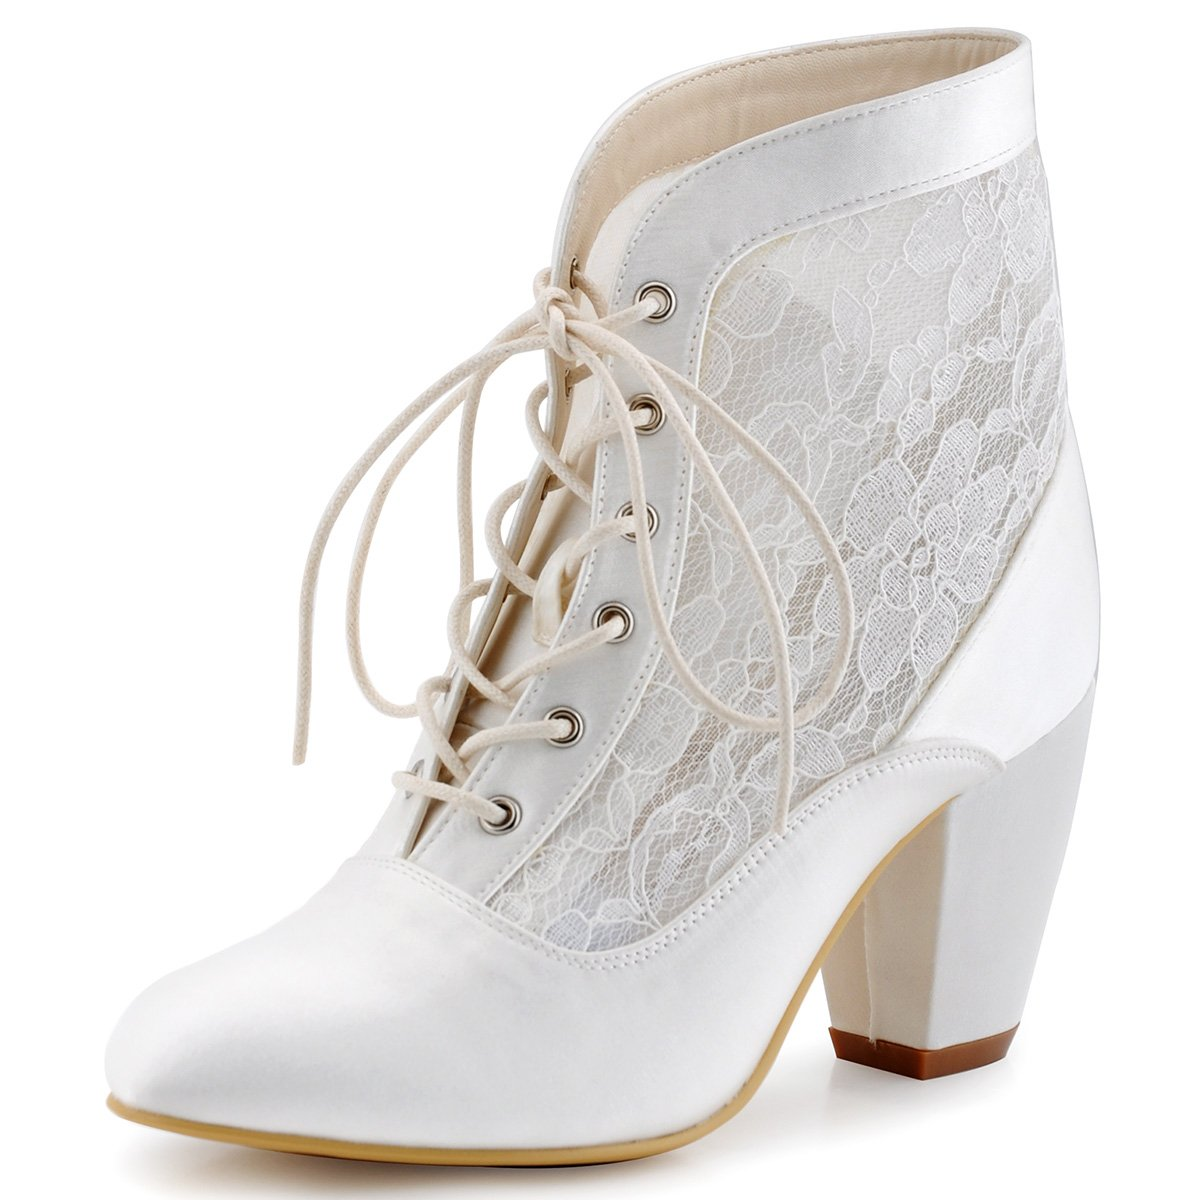 ElegantPark HC1559 Women Closed Toe Chunky Heel Lace up Sexy Lace Wedding Bridal Boots Ivory US 7